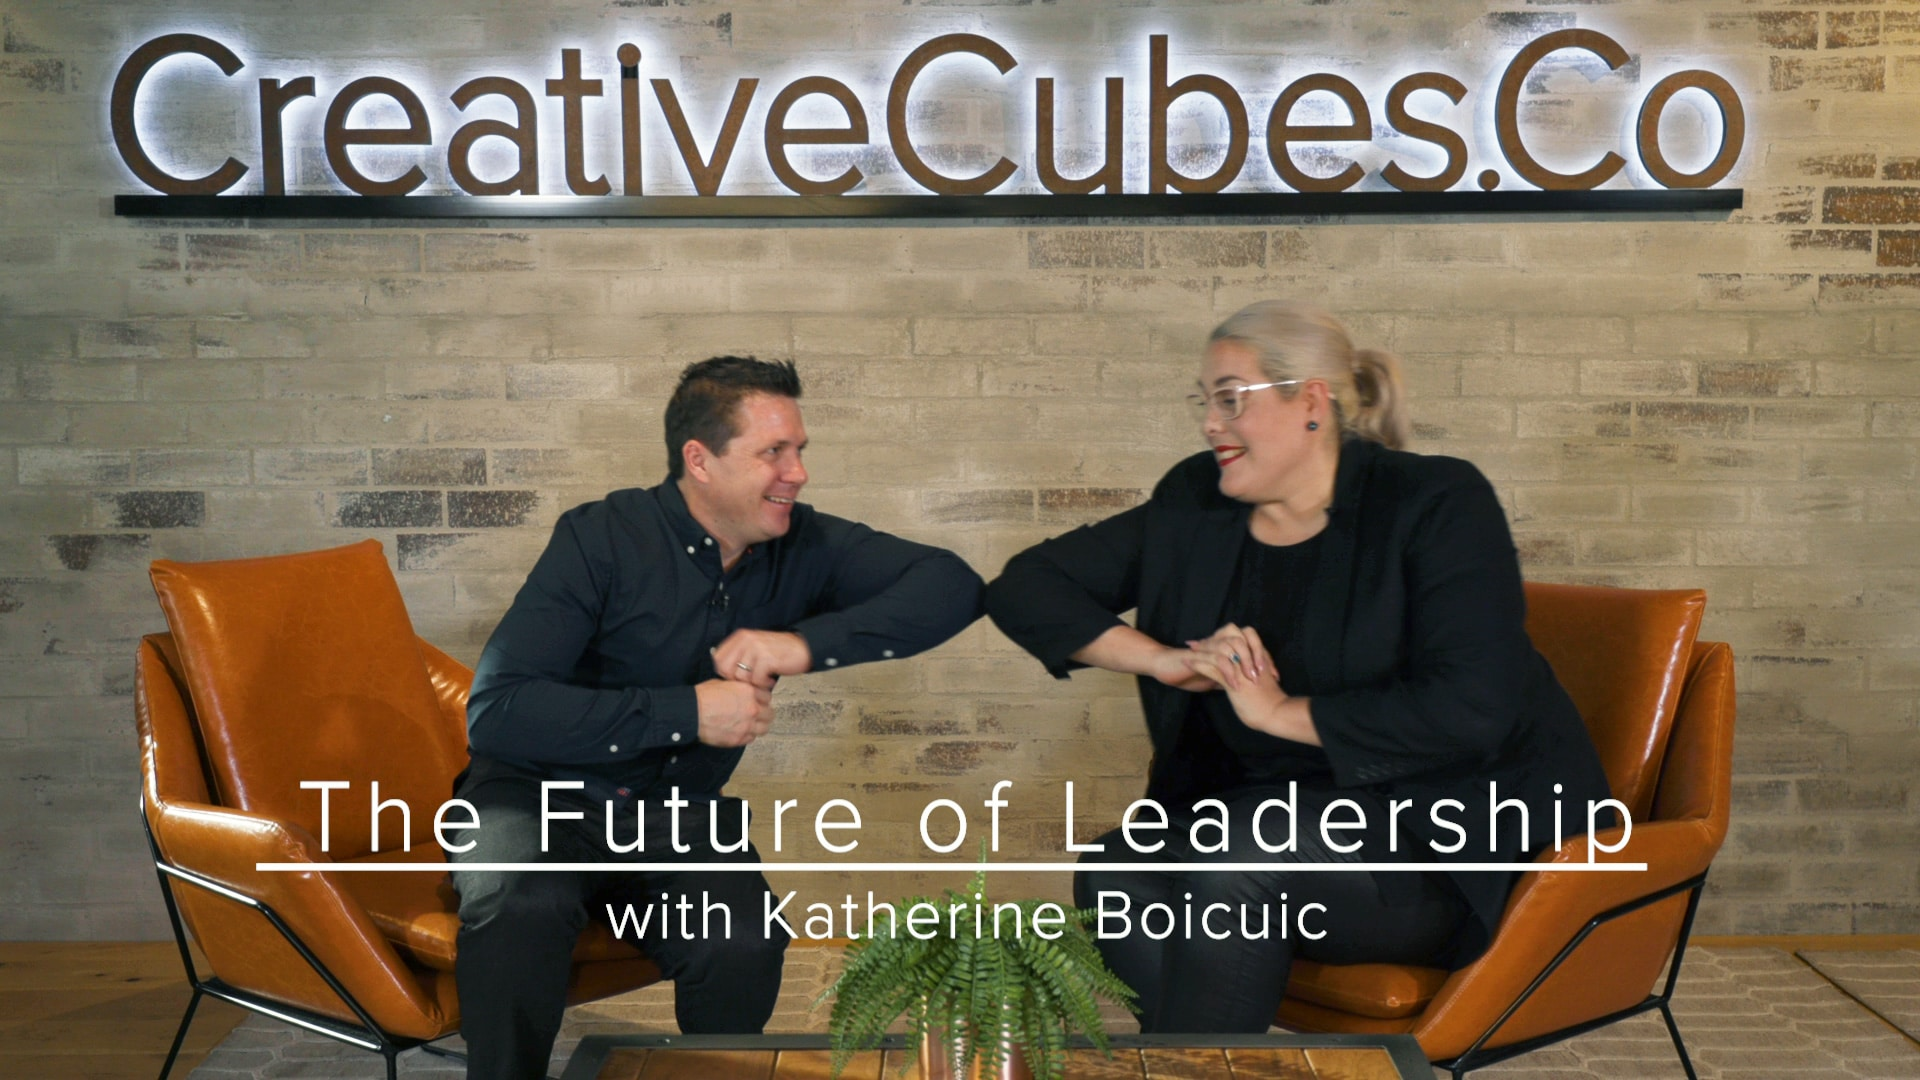 The-Future-of-Leadership-Katherine-Boiciuc-Mike-Hill-Futurists-World-Moonshine-Agency